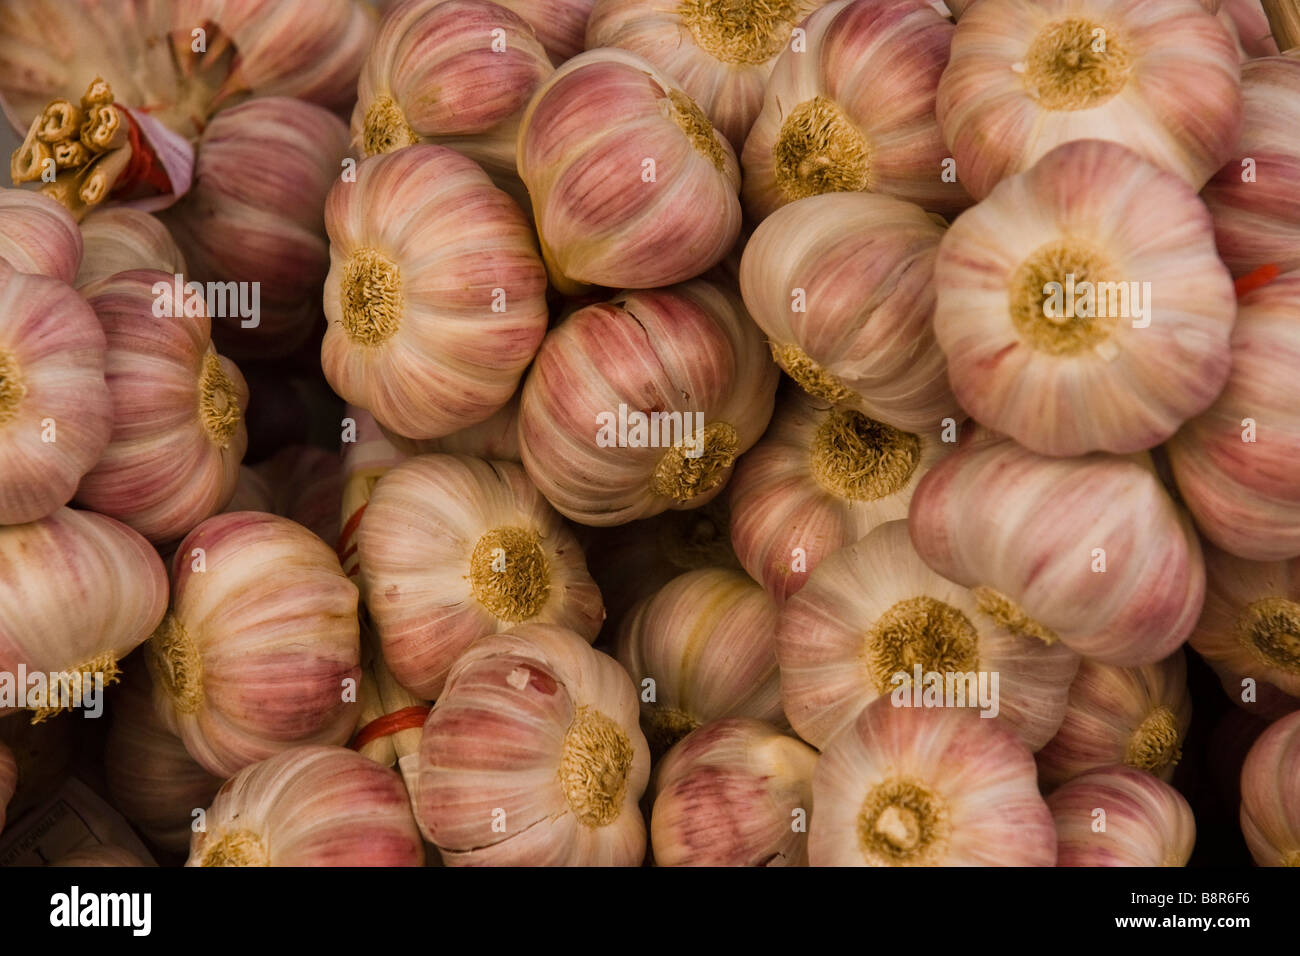 Garlic on sale in France - Stock Image